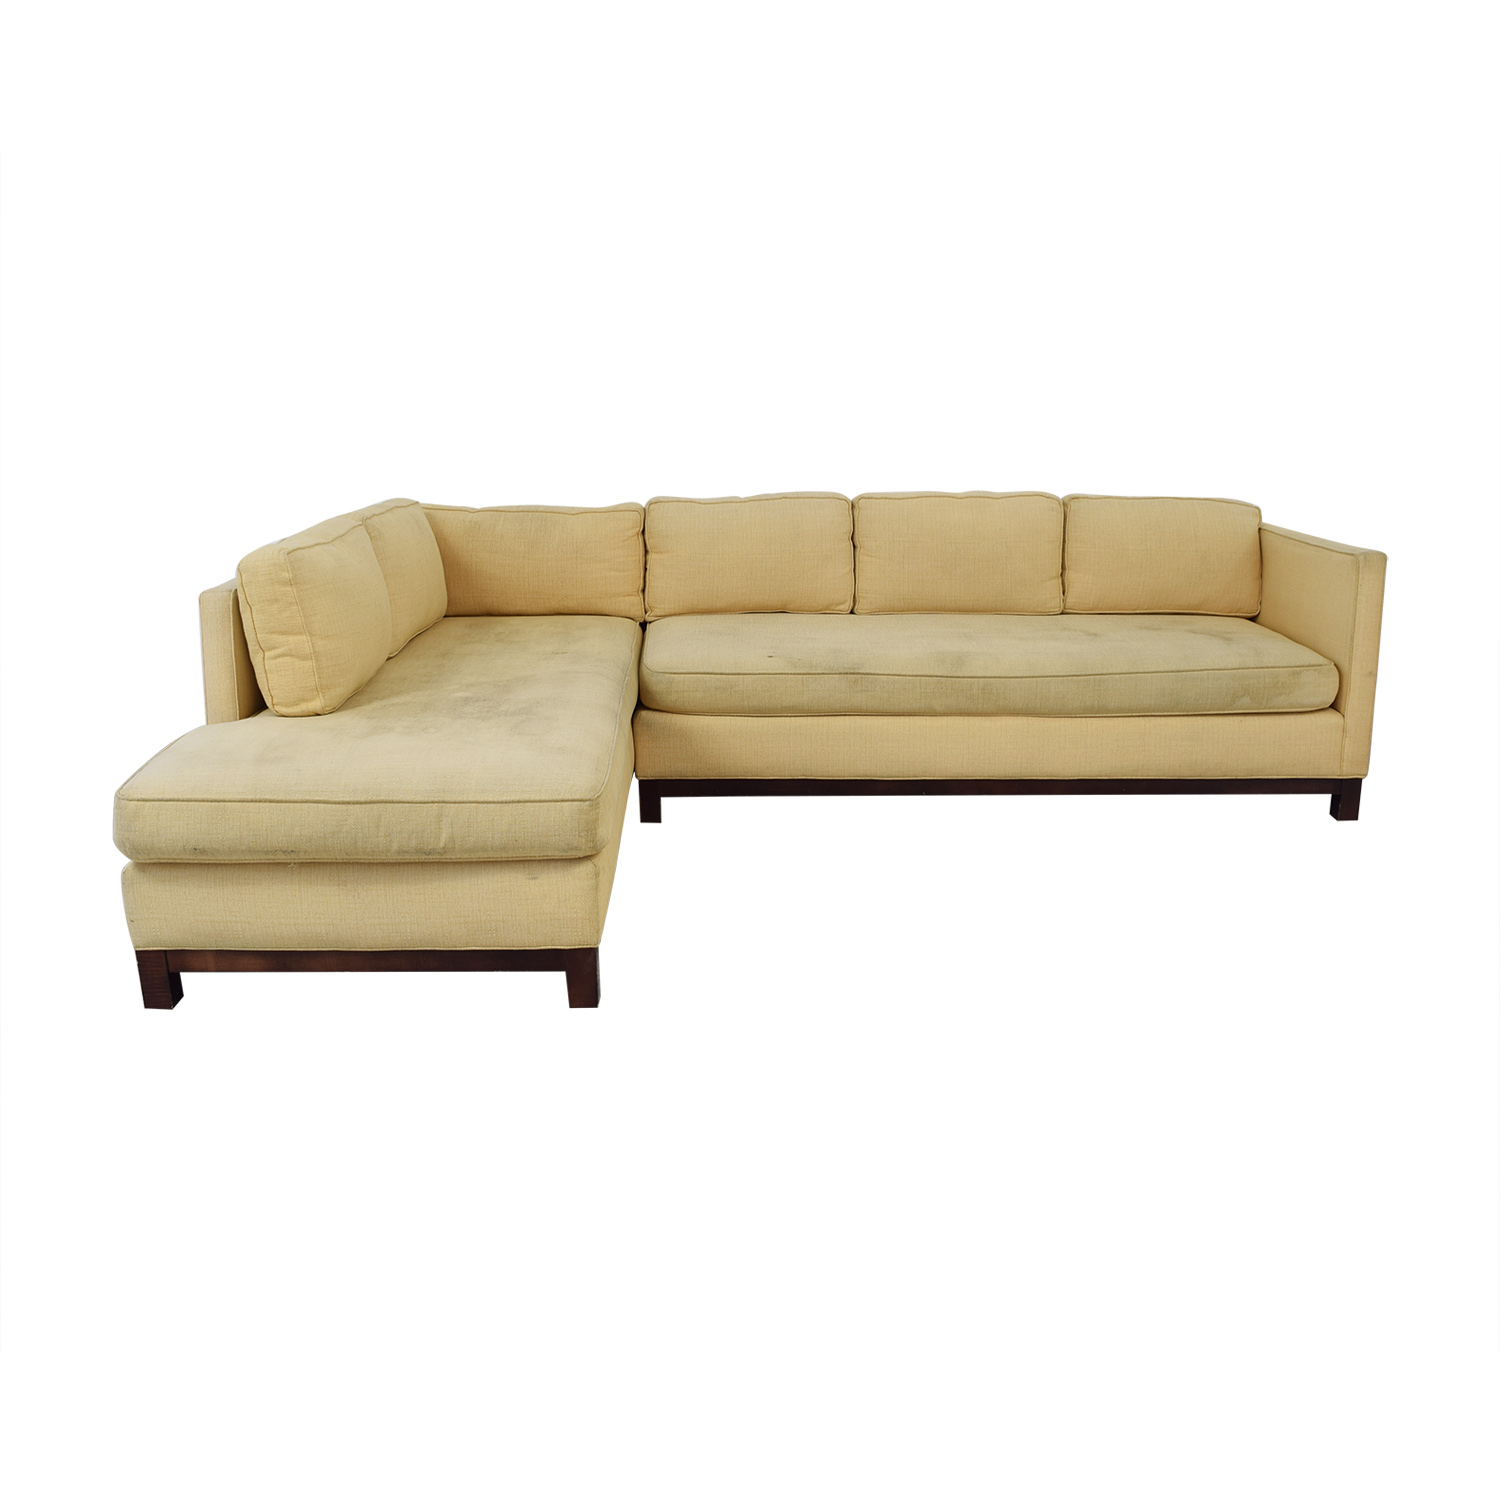 Mitchell Gold + Bob Williams Mitchell Gold + Bob Williams Clifton Chaise Sectional Sofa coupon